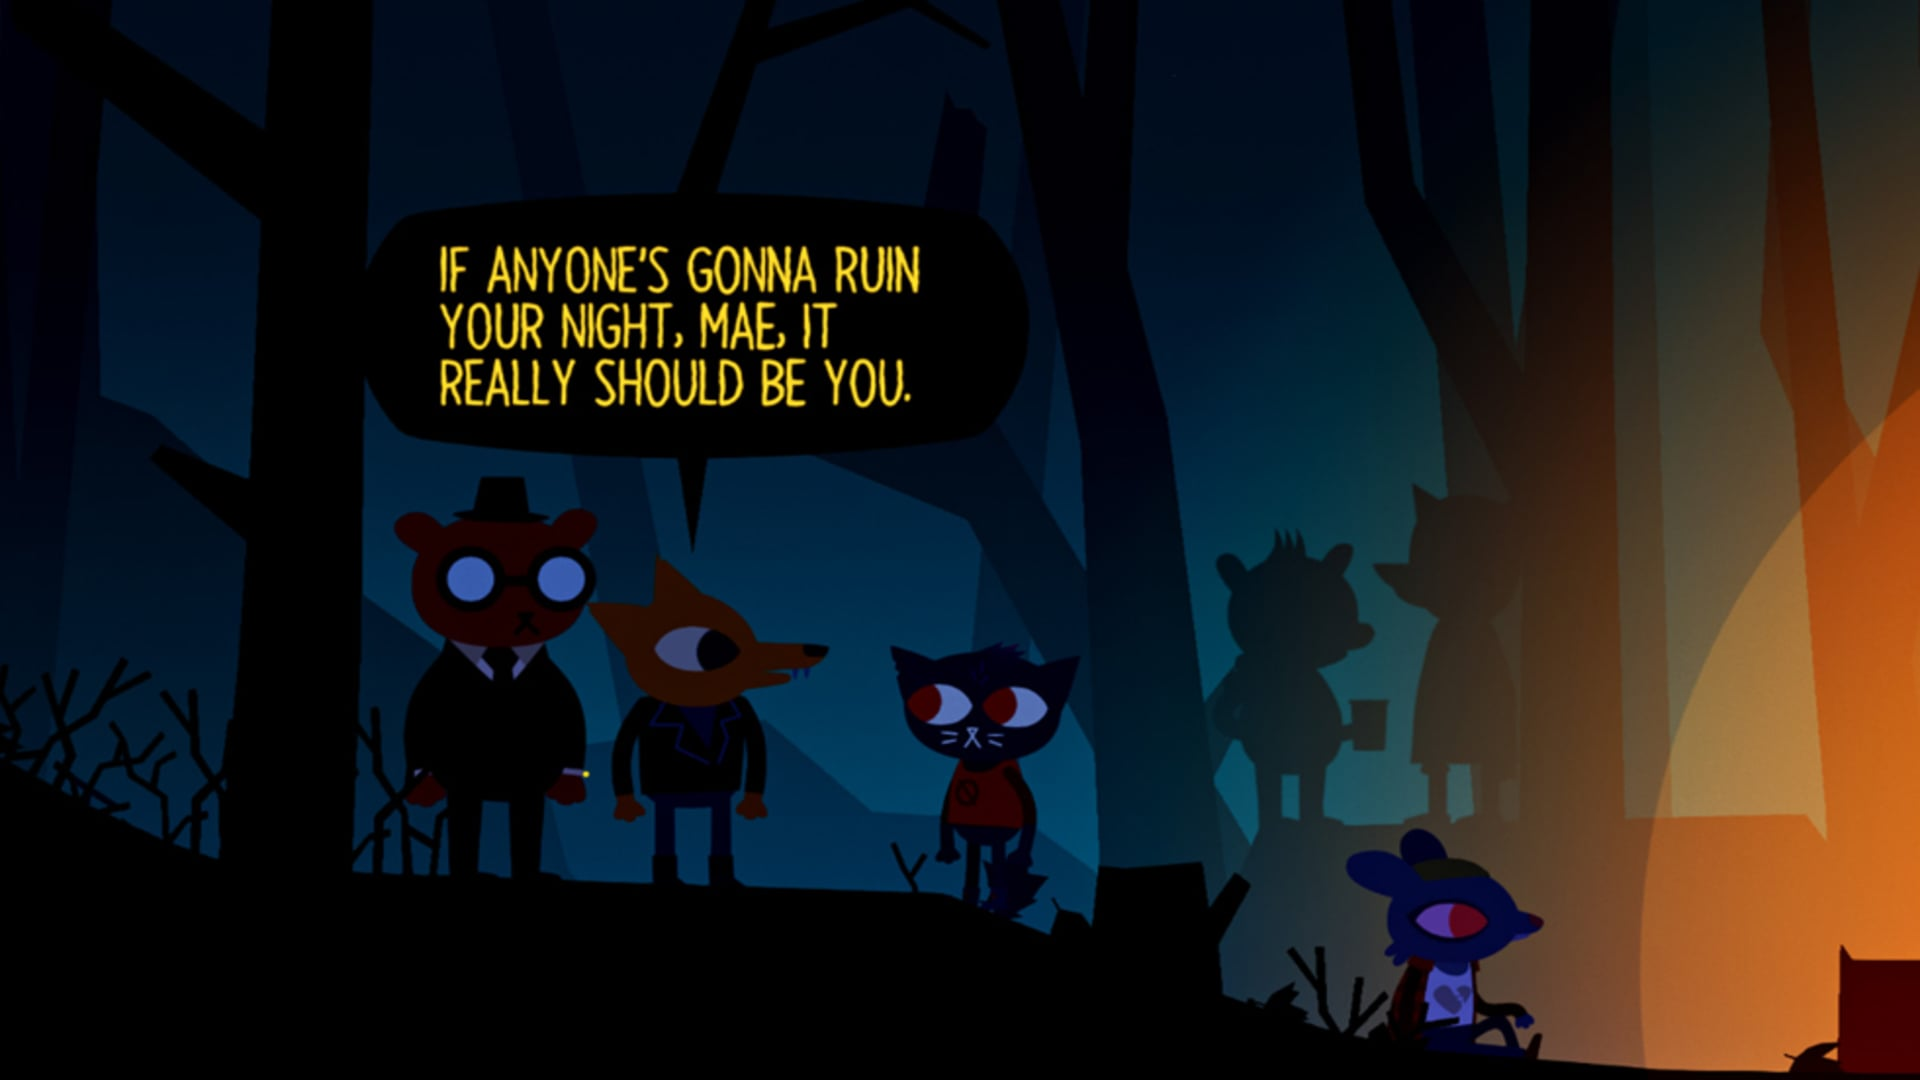 Slutförsenat – Night in the Woods ute nu